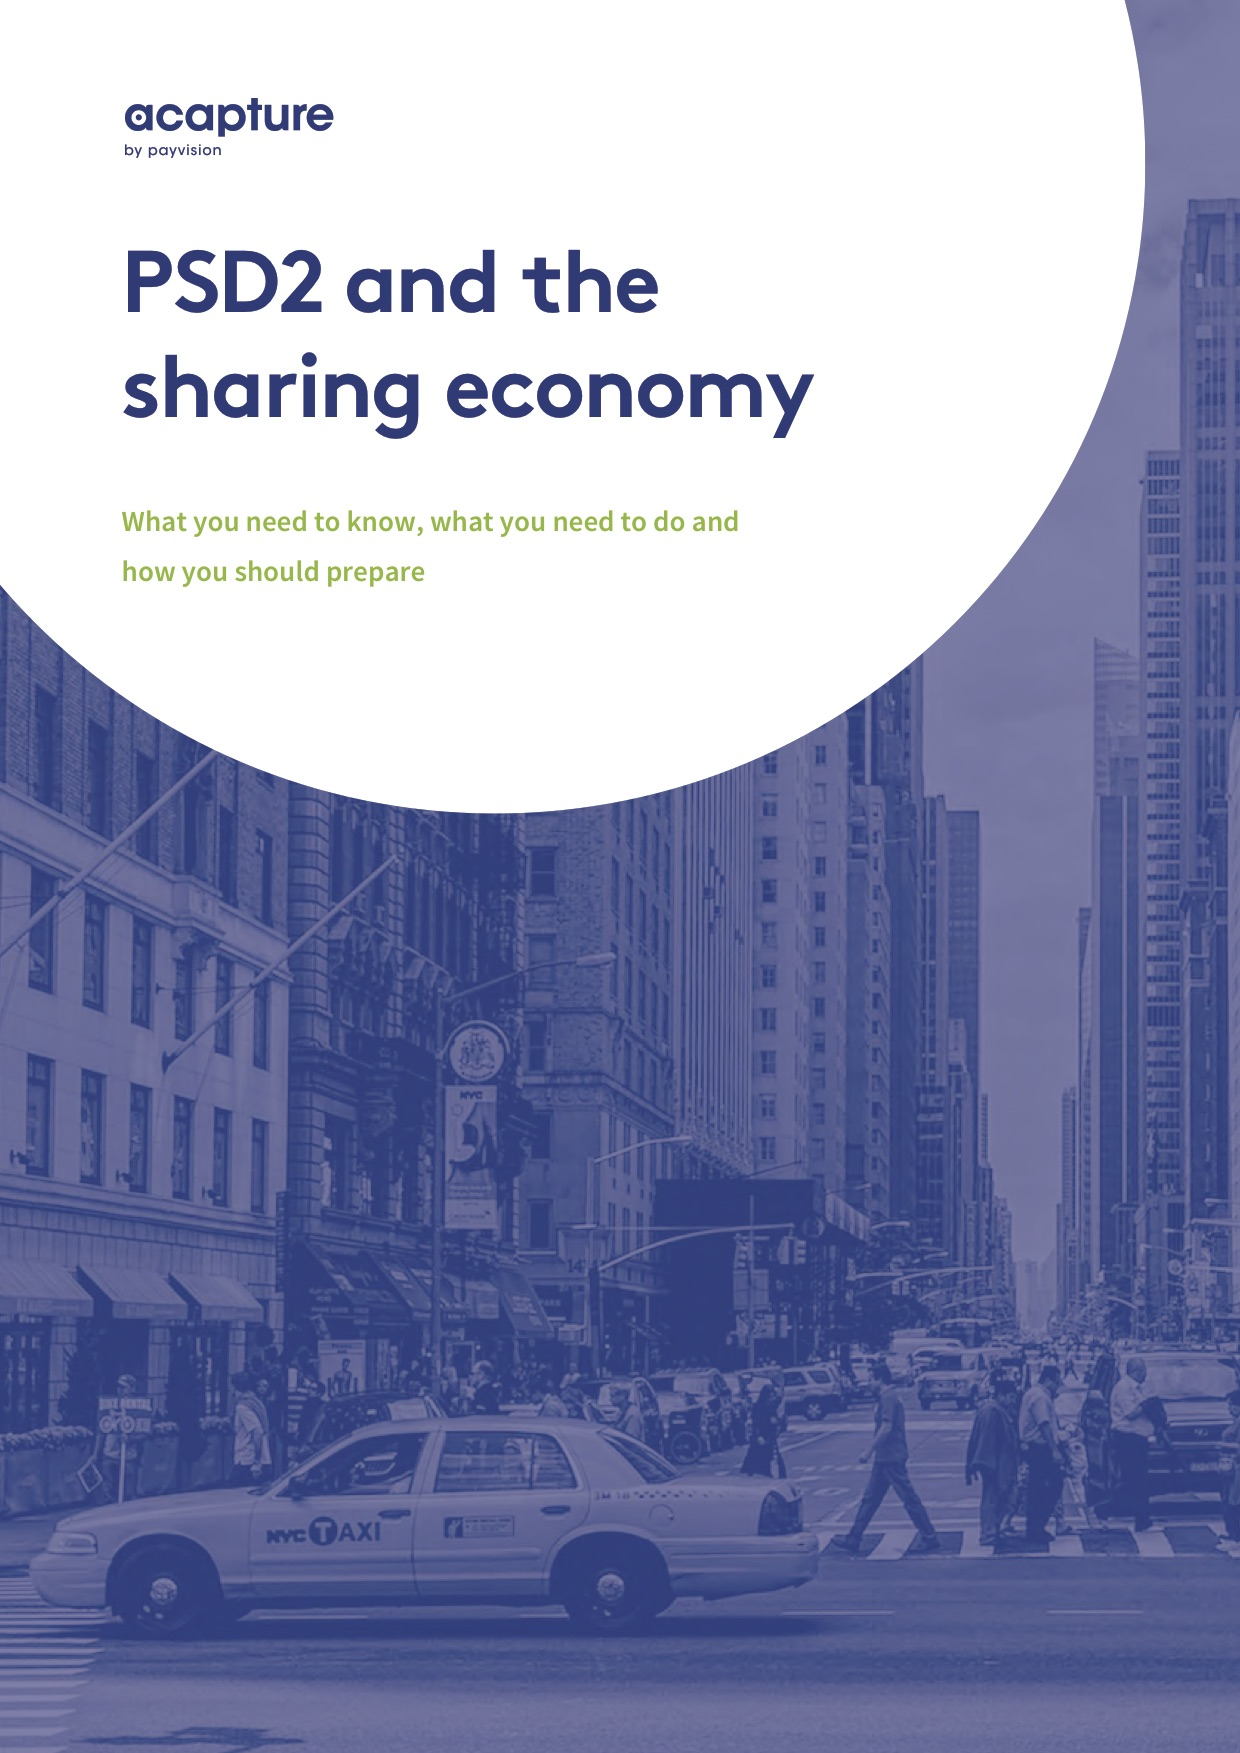 PSD2-and-the-sharing-economy-FP.jpg